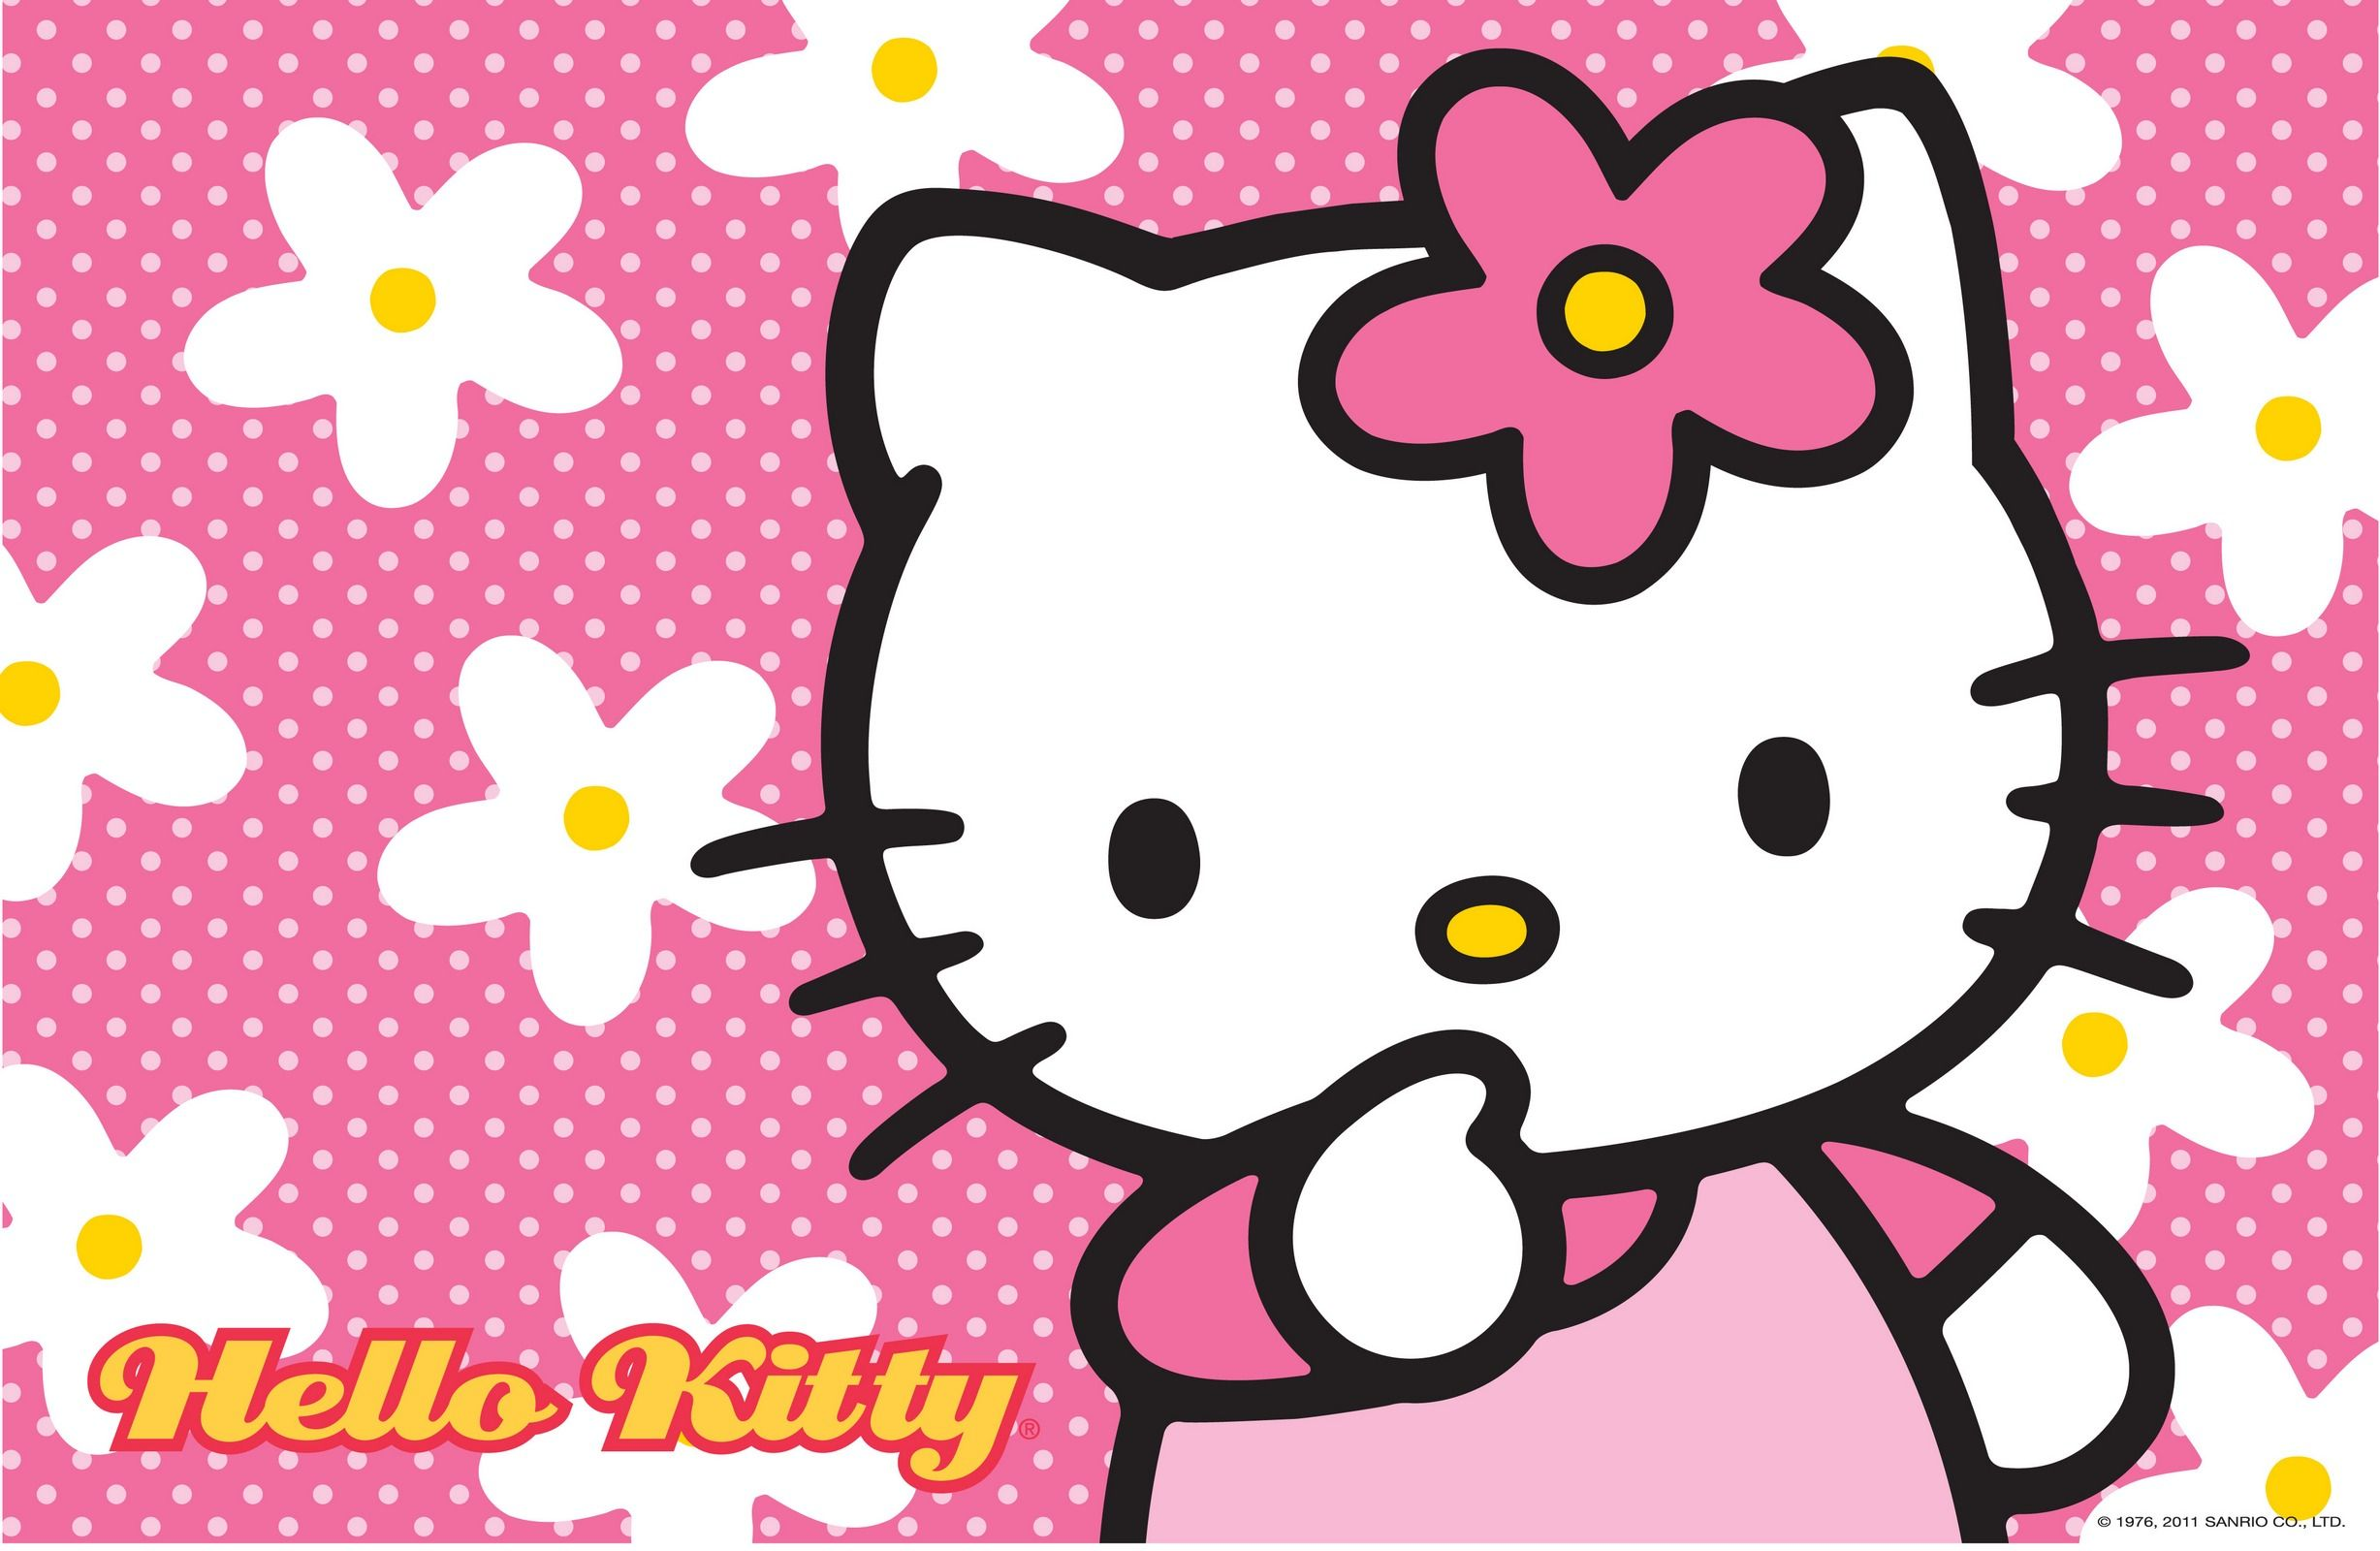 Good Wallpaper Hello Kitty Animated - daa7a0fe293bcd132d098effd9fa28c7  Pic_869573.jpg